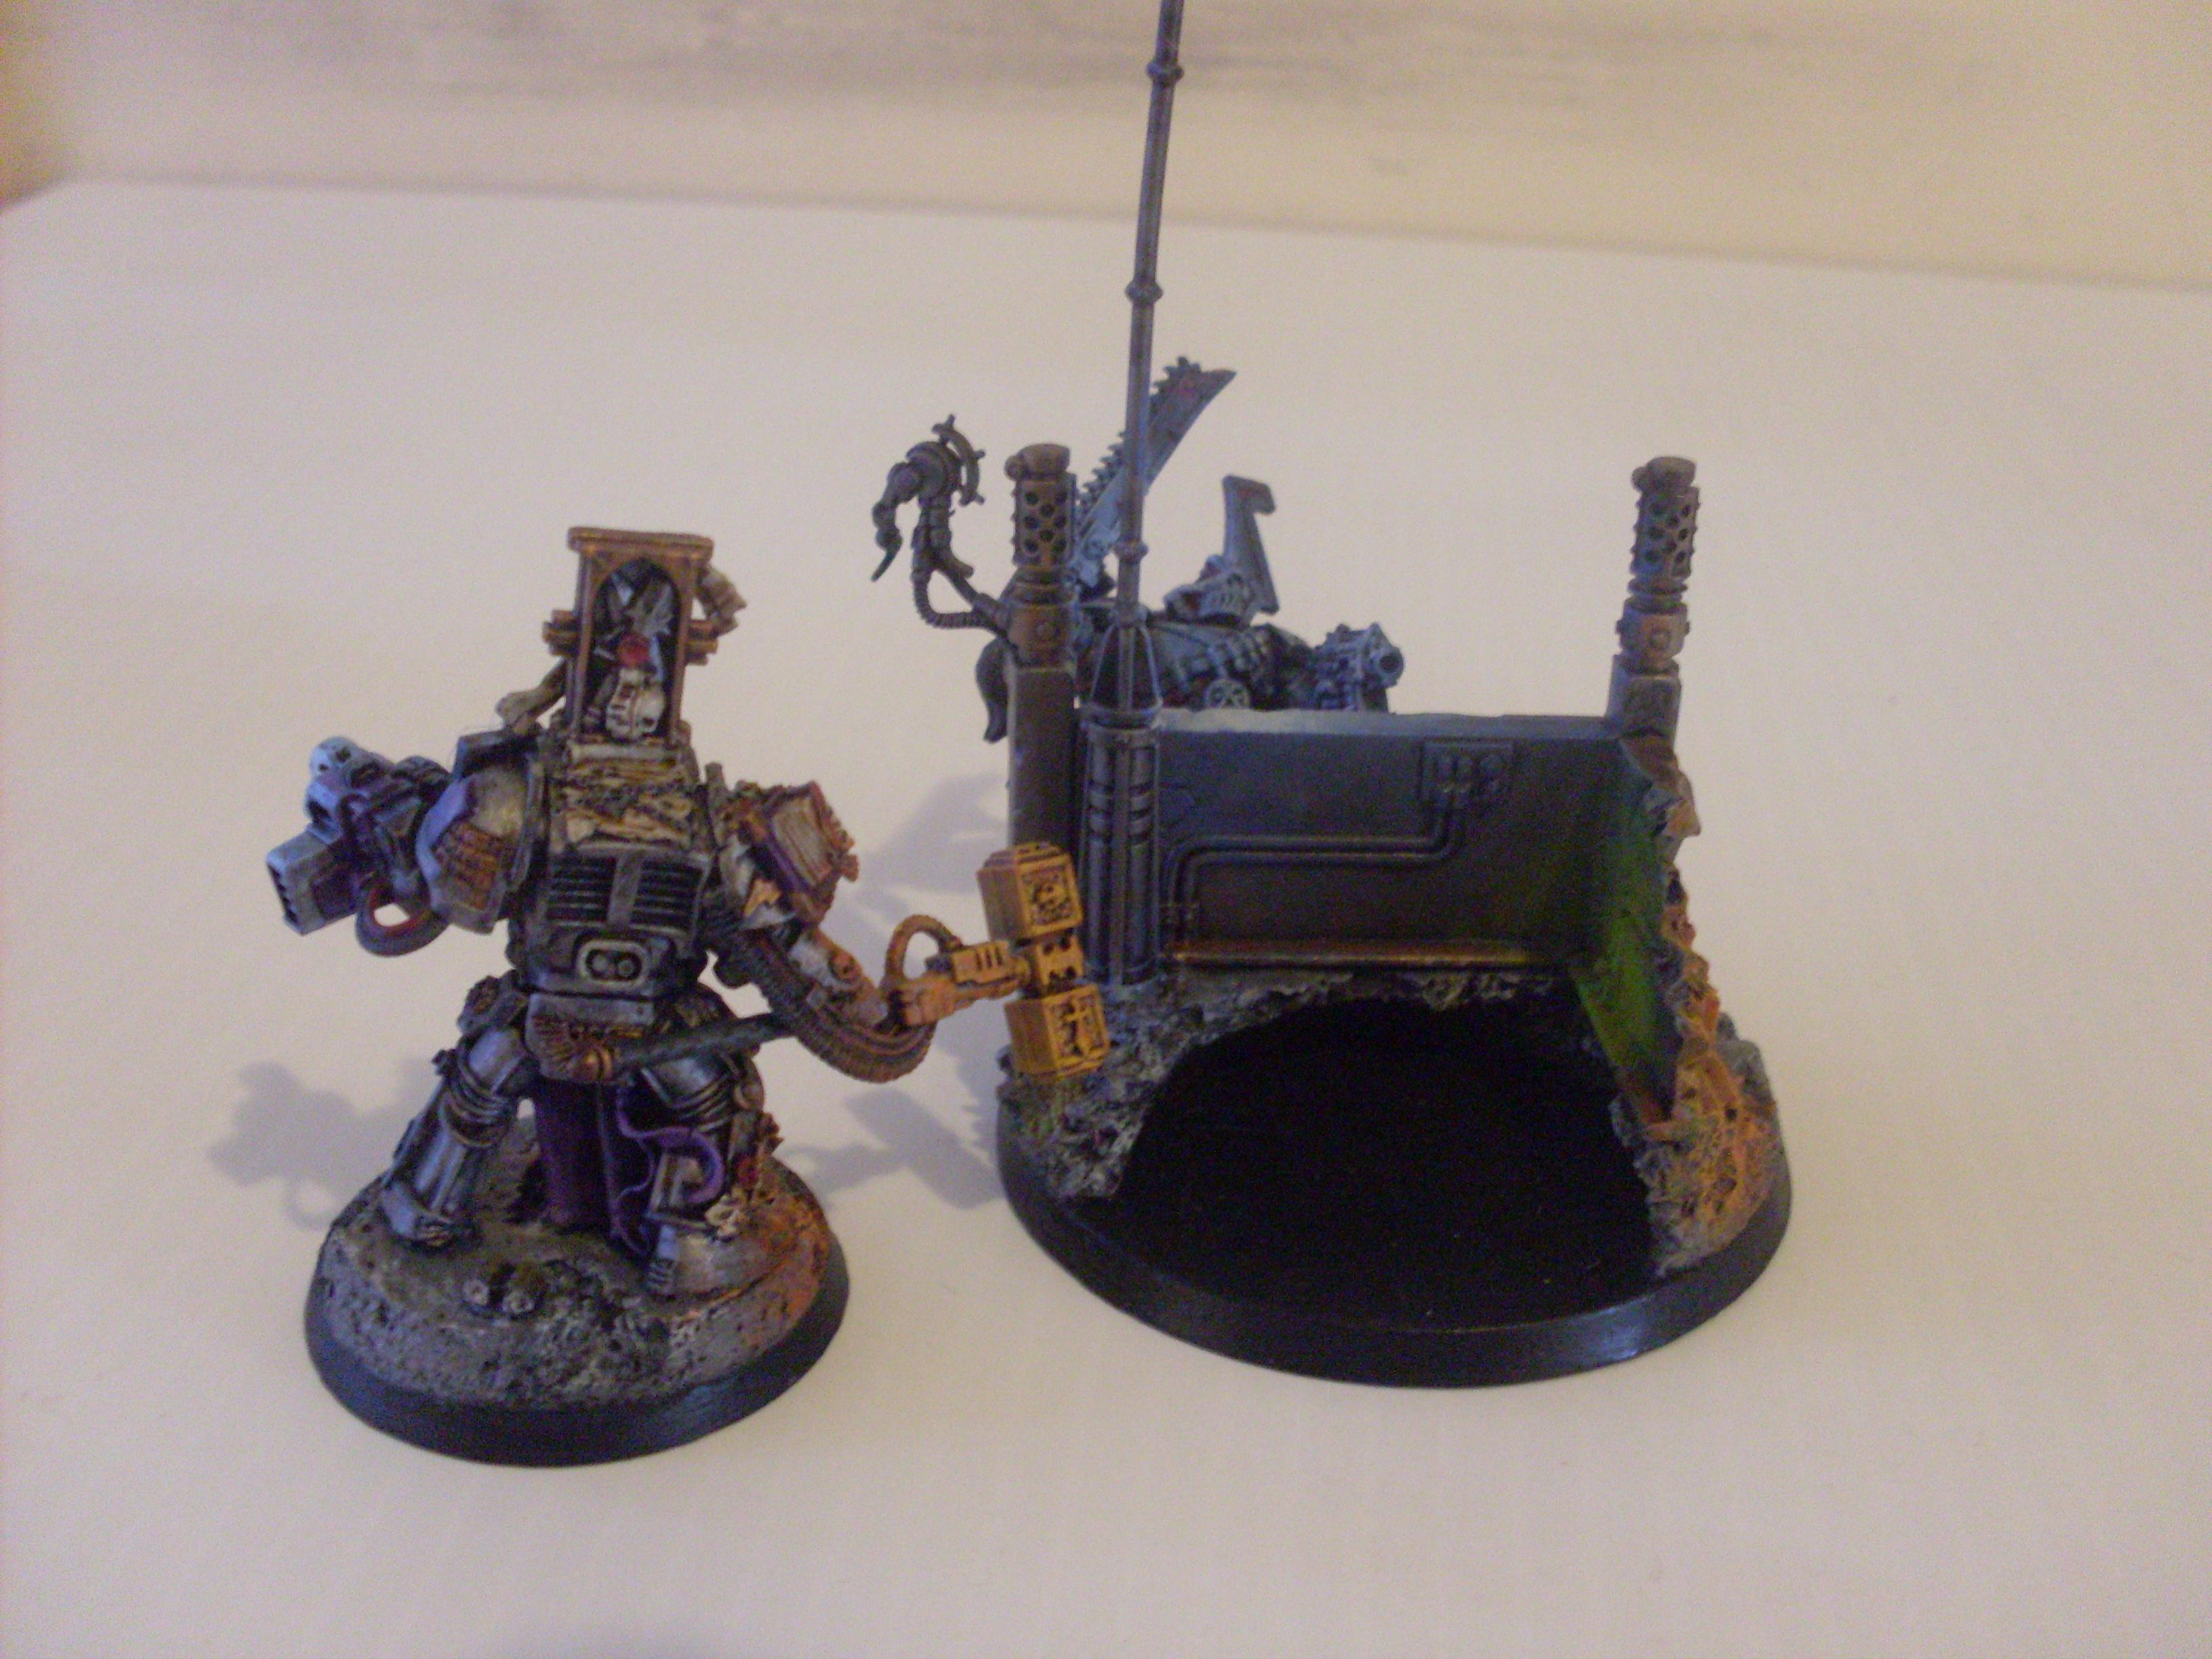 Army, Berserkers, Chaos, Combi-melta, Diaorama, Grey Knights, Guard, Hellbrute, Imperial, Imperial Knight, Inquisitor, Khorne, Rust Effect, Source Lighting, Space Marines, Stripes, Super-heavy, Terminator Armor, Titan, Vehicle, Walker, Weathered, World Eaters